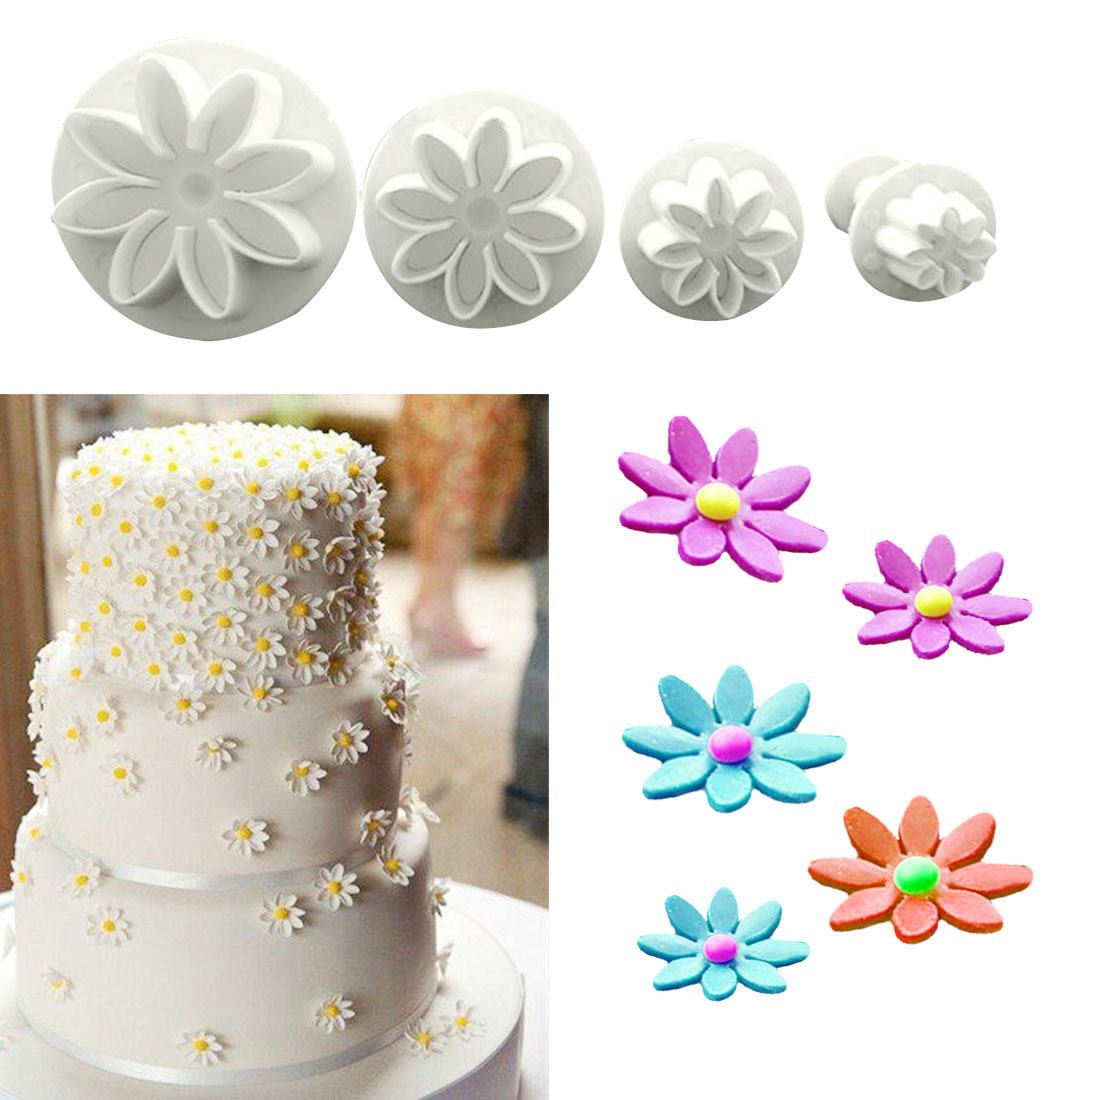 4Pcs/Set Daisy <font><b>Flower</b></font> Cookie Sunflower Plunger <font><b>Cake</b></font> <font><b>decorating</b></font> <font><b>tools</b></font> Cupcake Kitchen fondant Kitchen accessories <font><b>Cake</b></font> mold Stand image